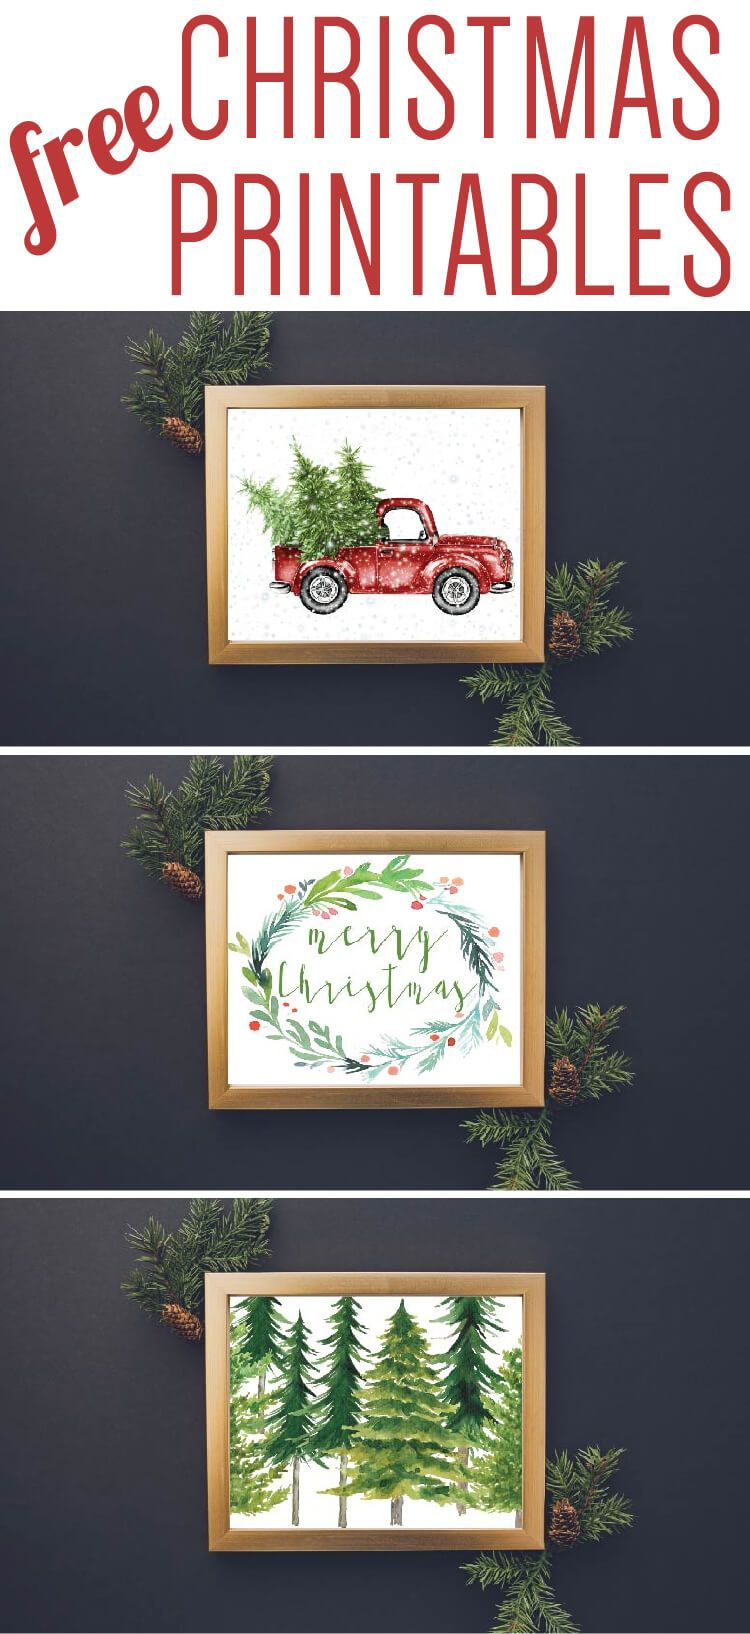 free christmas printables for your home | christmas decorations and